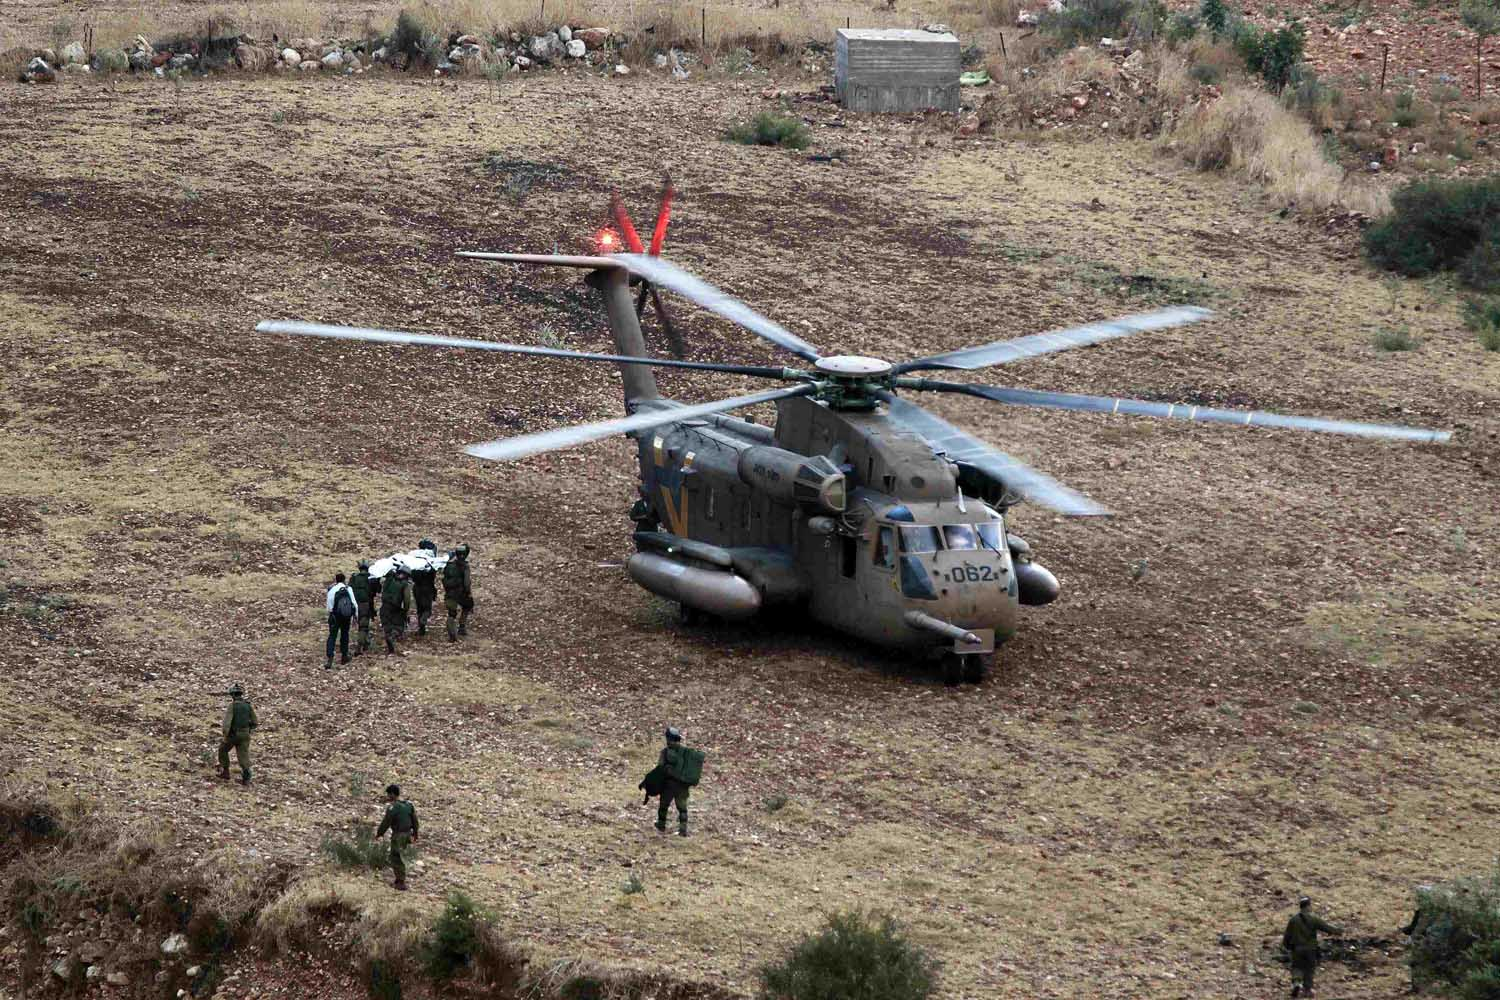 Sept. 21, 2013. Israeli soldiers carry the body of a fellow soldier who was killed near the West Bank town of Qalqilya onto a military helicopter.